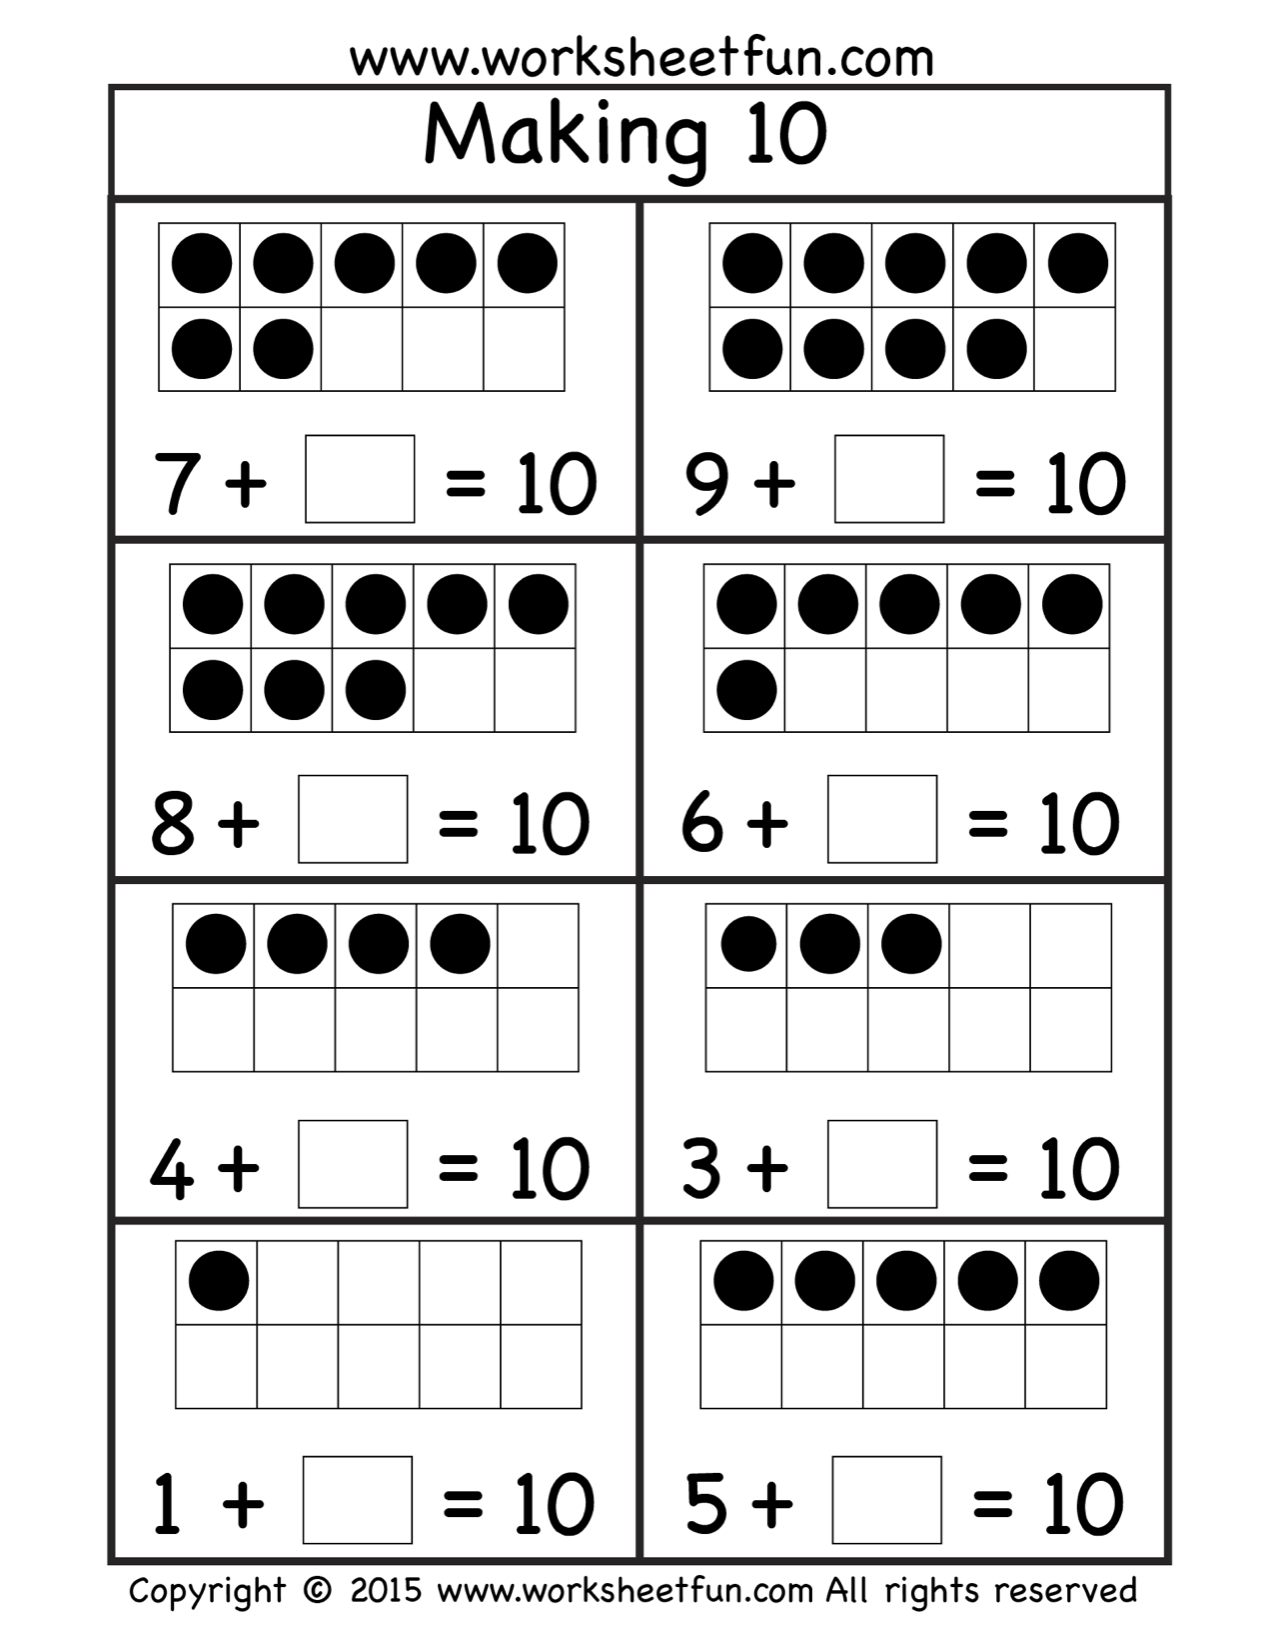 Free Making Ten Worksheet | 1.oszt | Pinterest